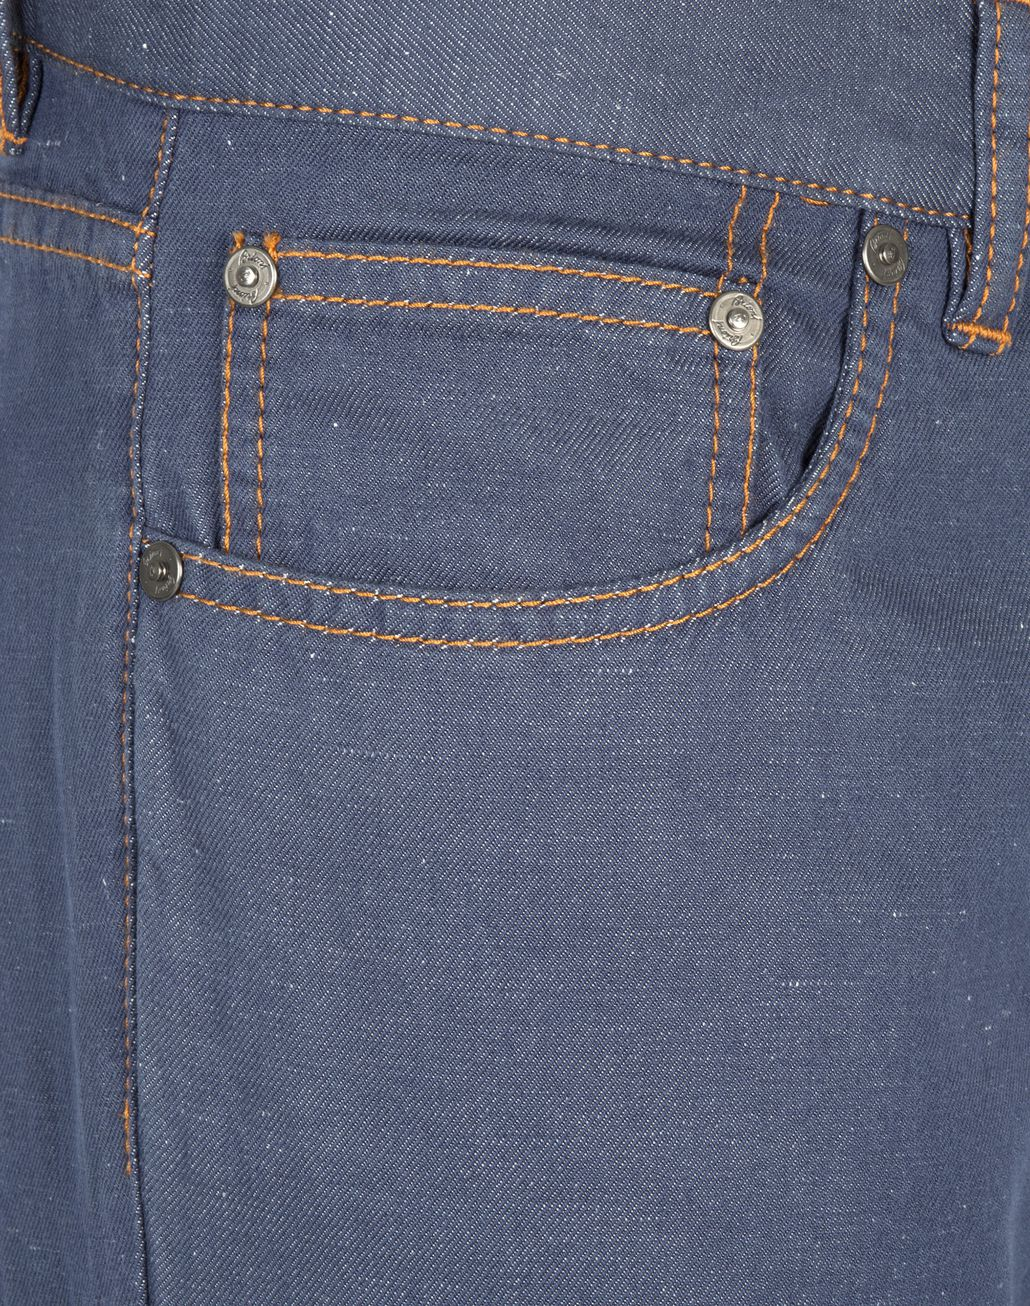 BRIONI Bluette Slim-Fit Cotton and Linen Aneto Jeans  Denim Man e